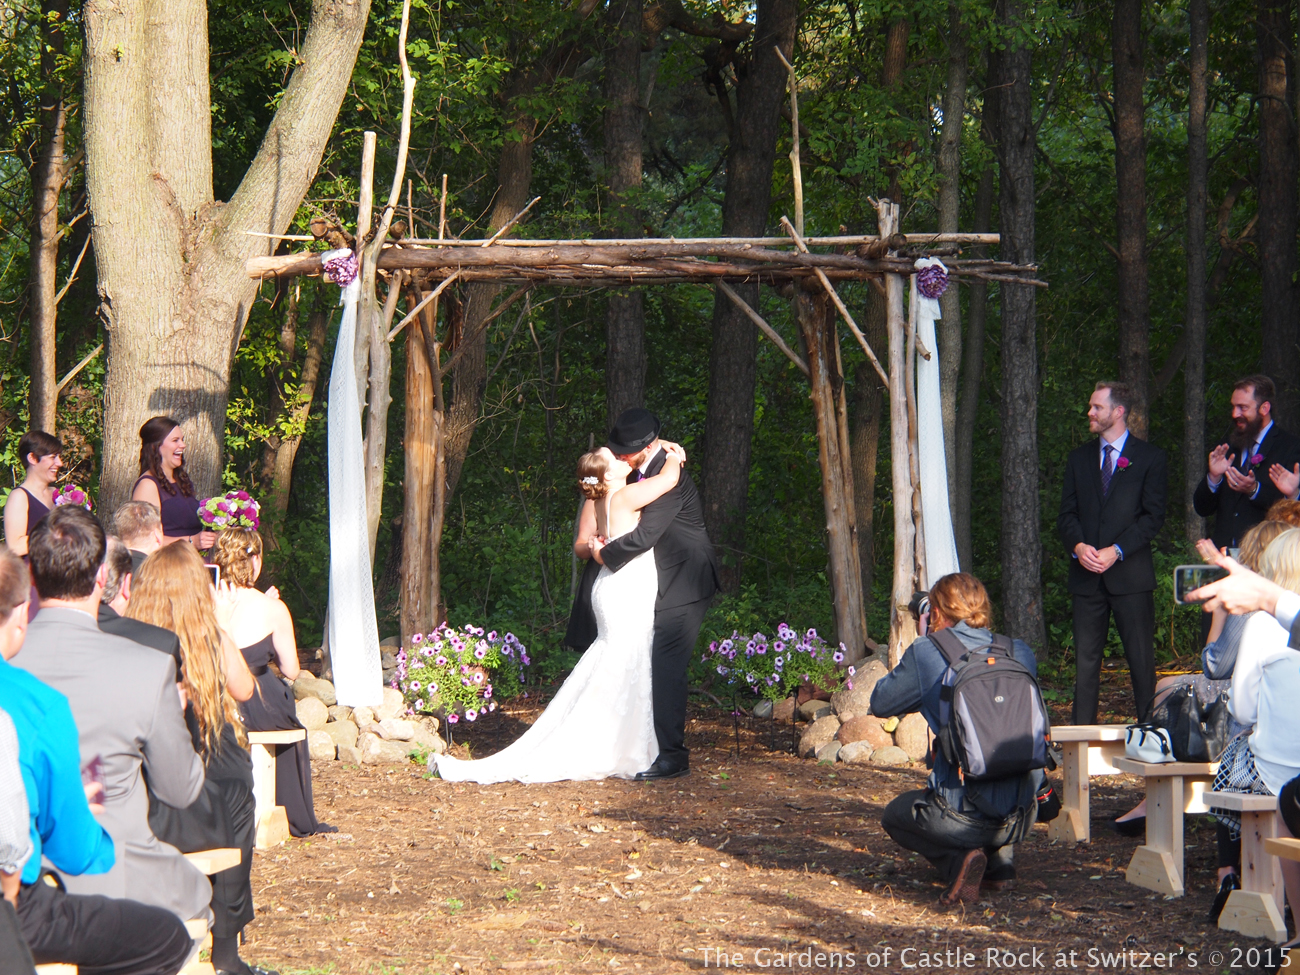 Beautiful Fall Wedding In The Woods At Gardens